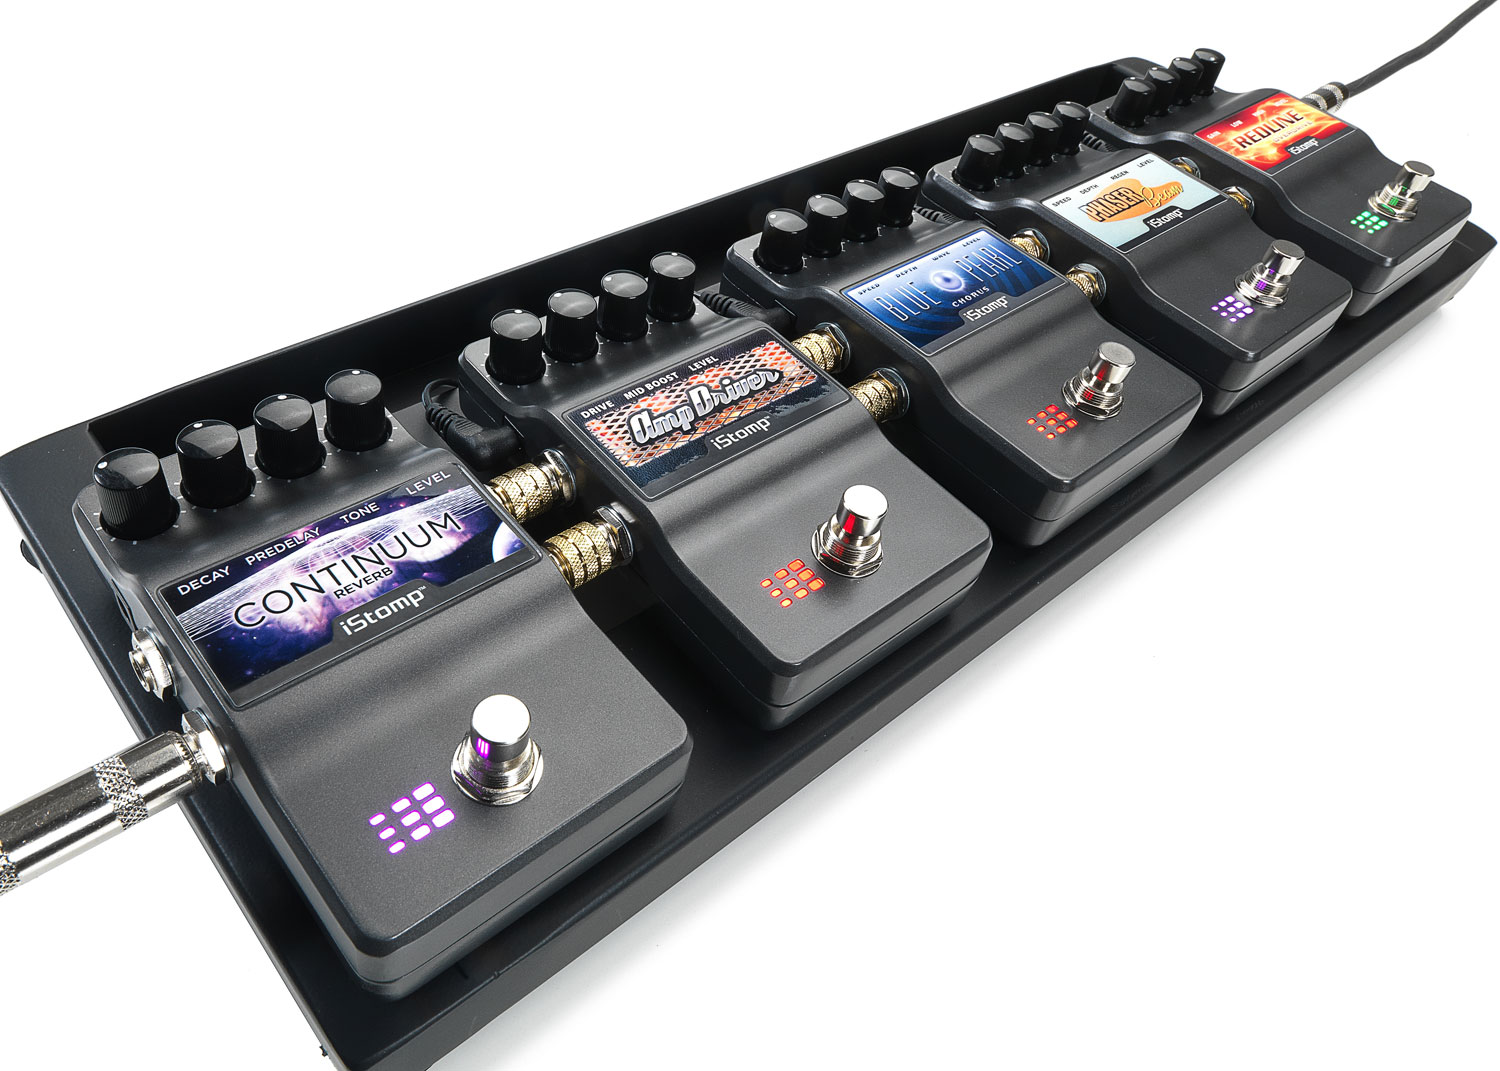 istomp digitech guitar effects. Black Bedroom Furniture Sets. Home Design Ideas